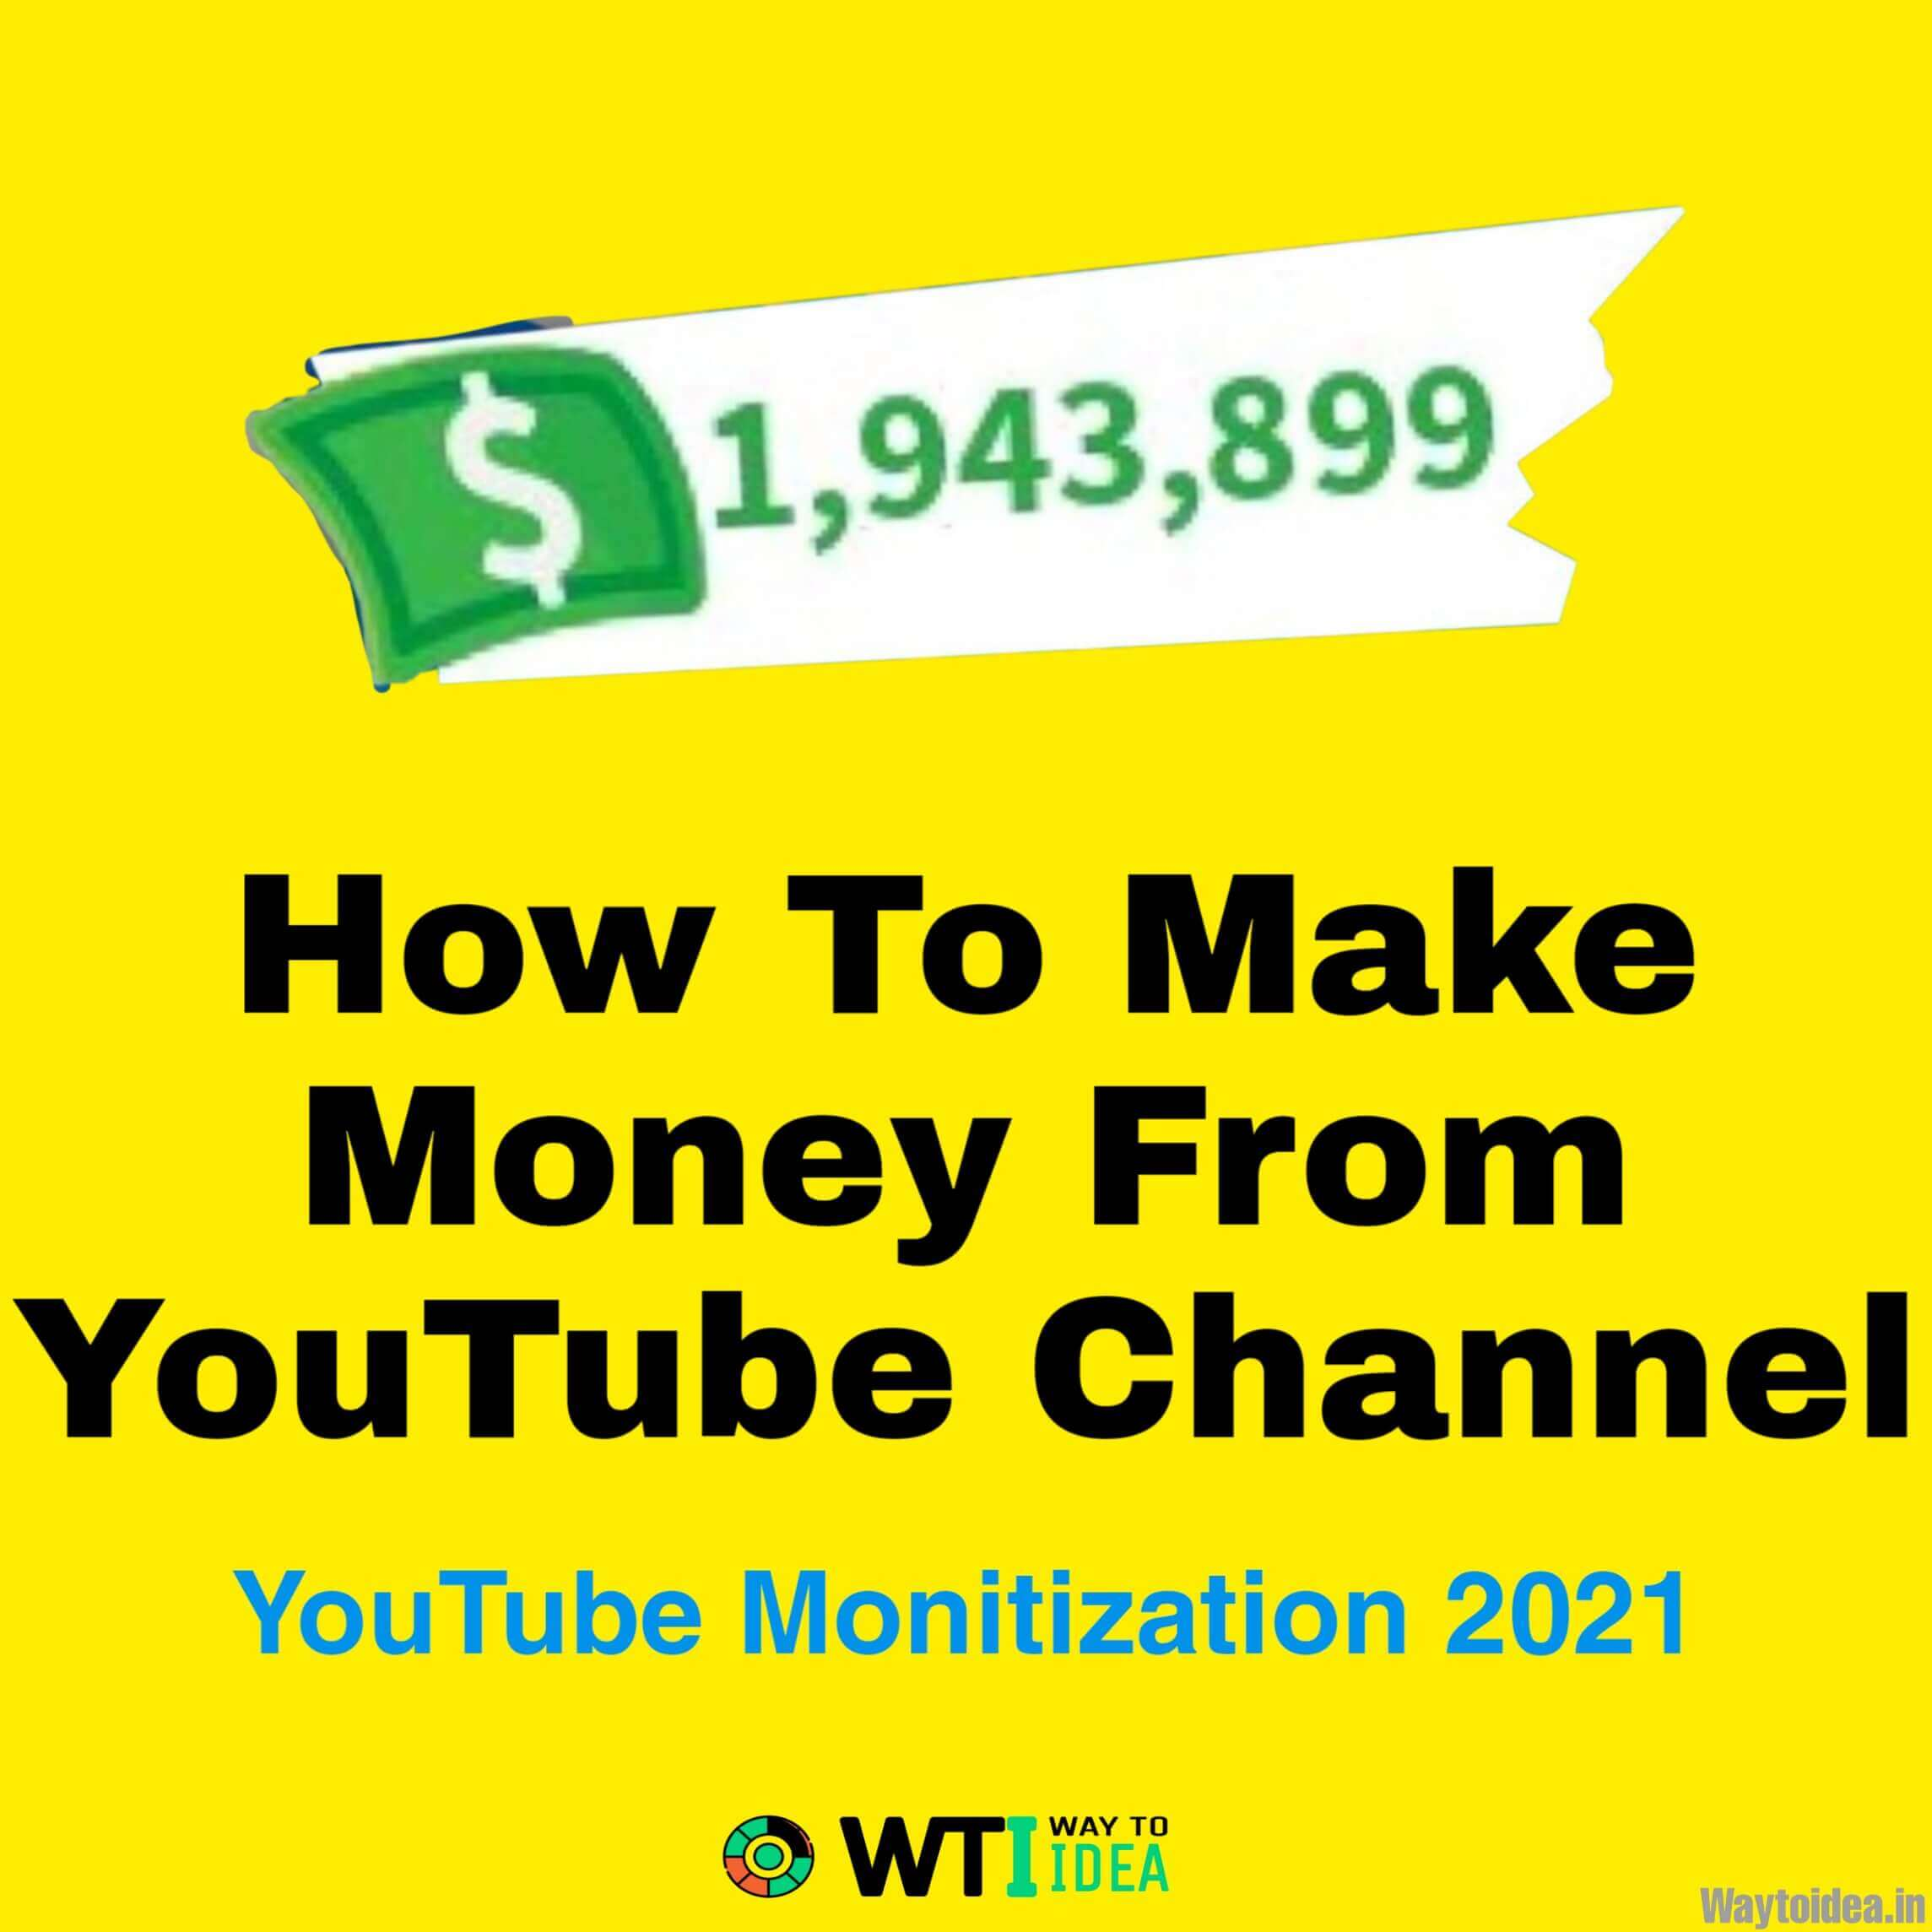 How To Make Money From YouTube Channel - YouTube Monitization 2021